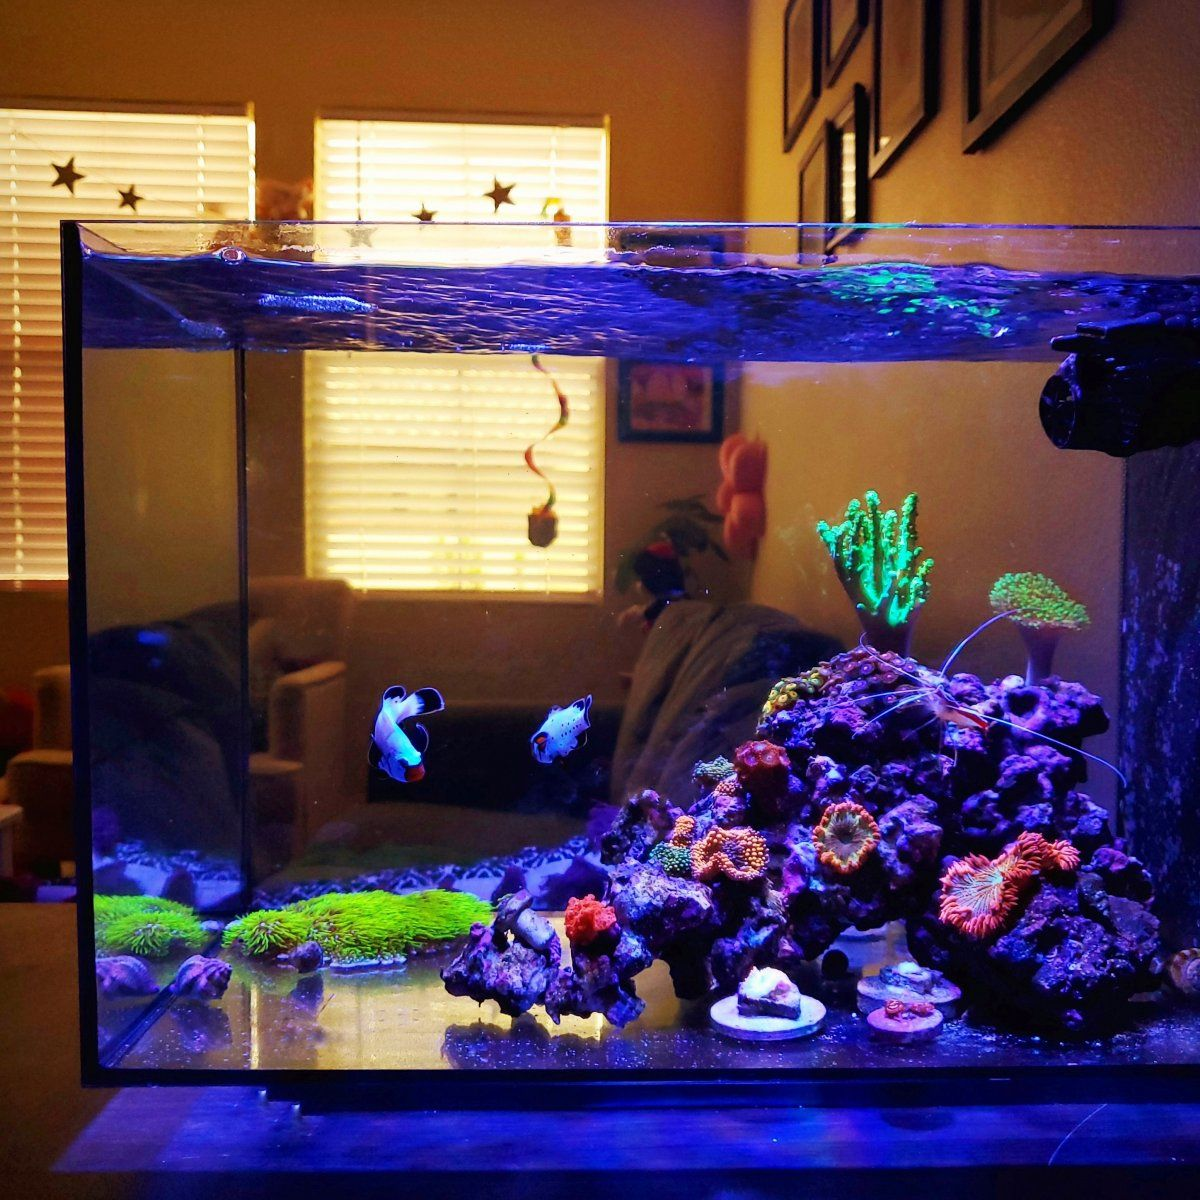 Icp Tests Vs Hobby Grade Let S Talk About It Photo Raul Medina Https Www Reef2reef Com Threads Icp Test R In 2020 Saltwater Fish Tanks Aquarium Saltwater Aquarium